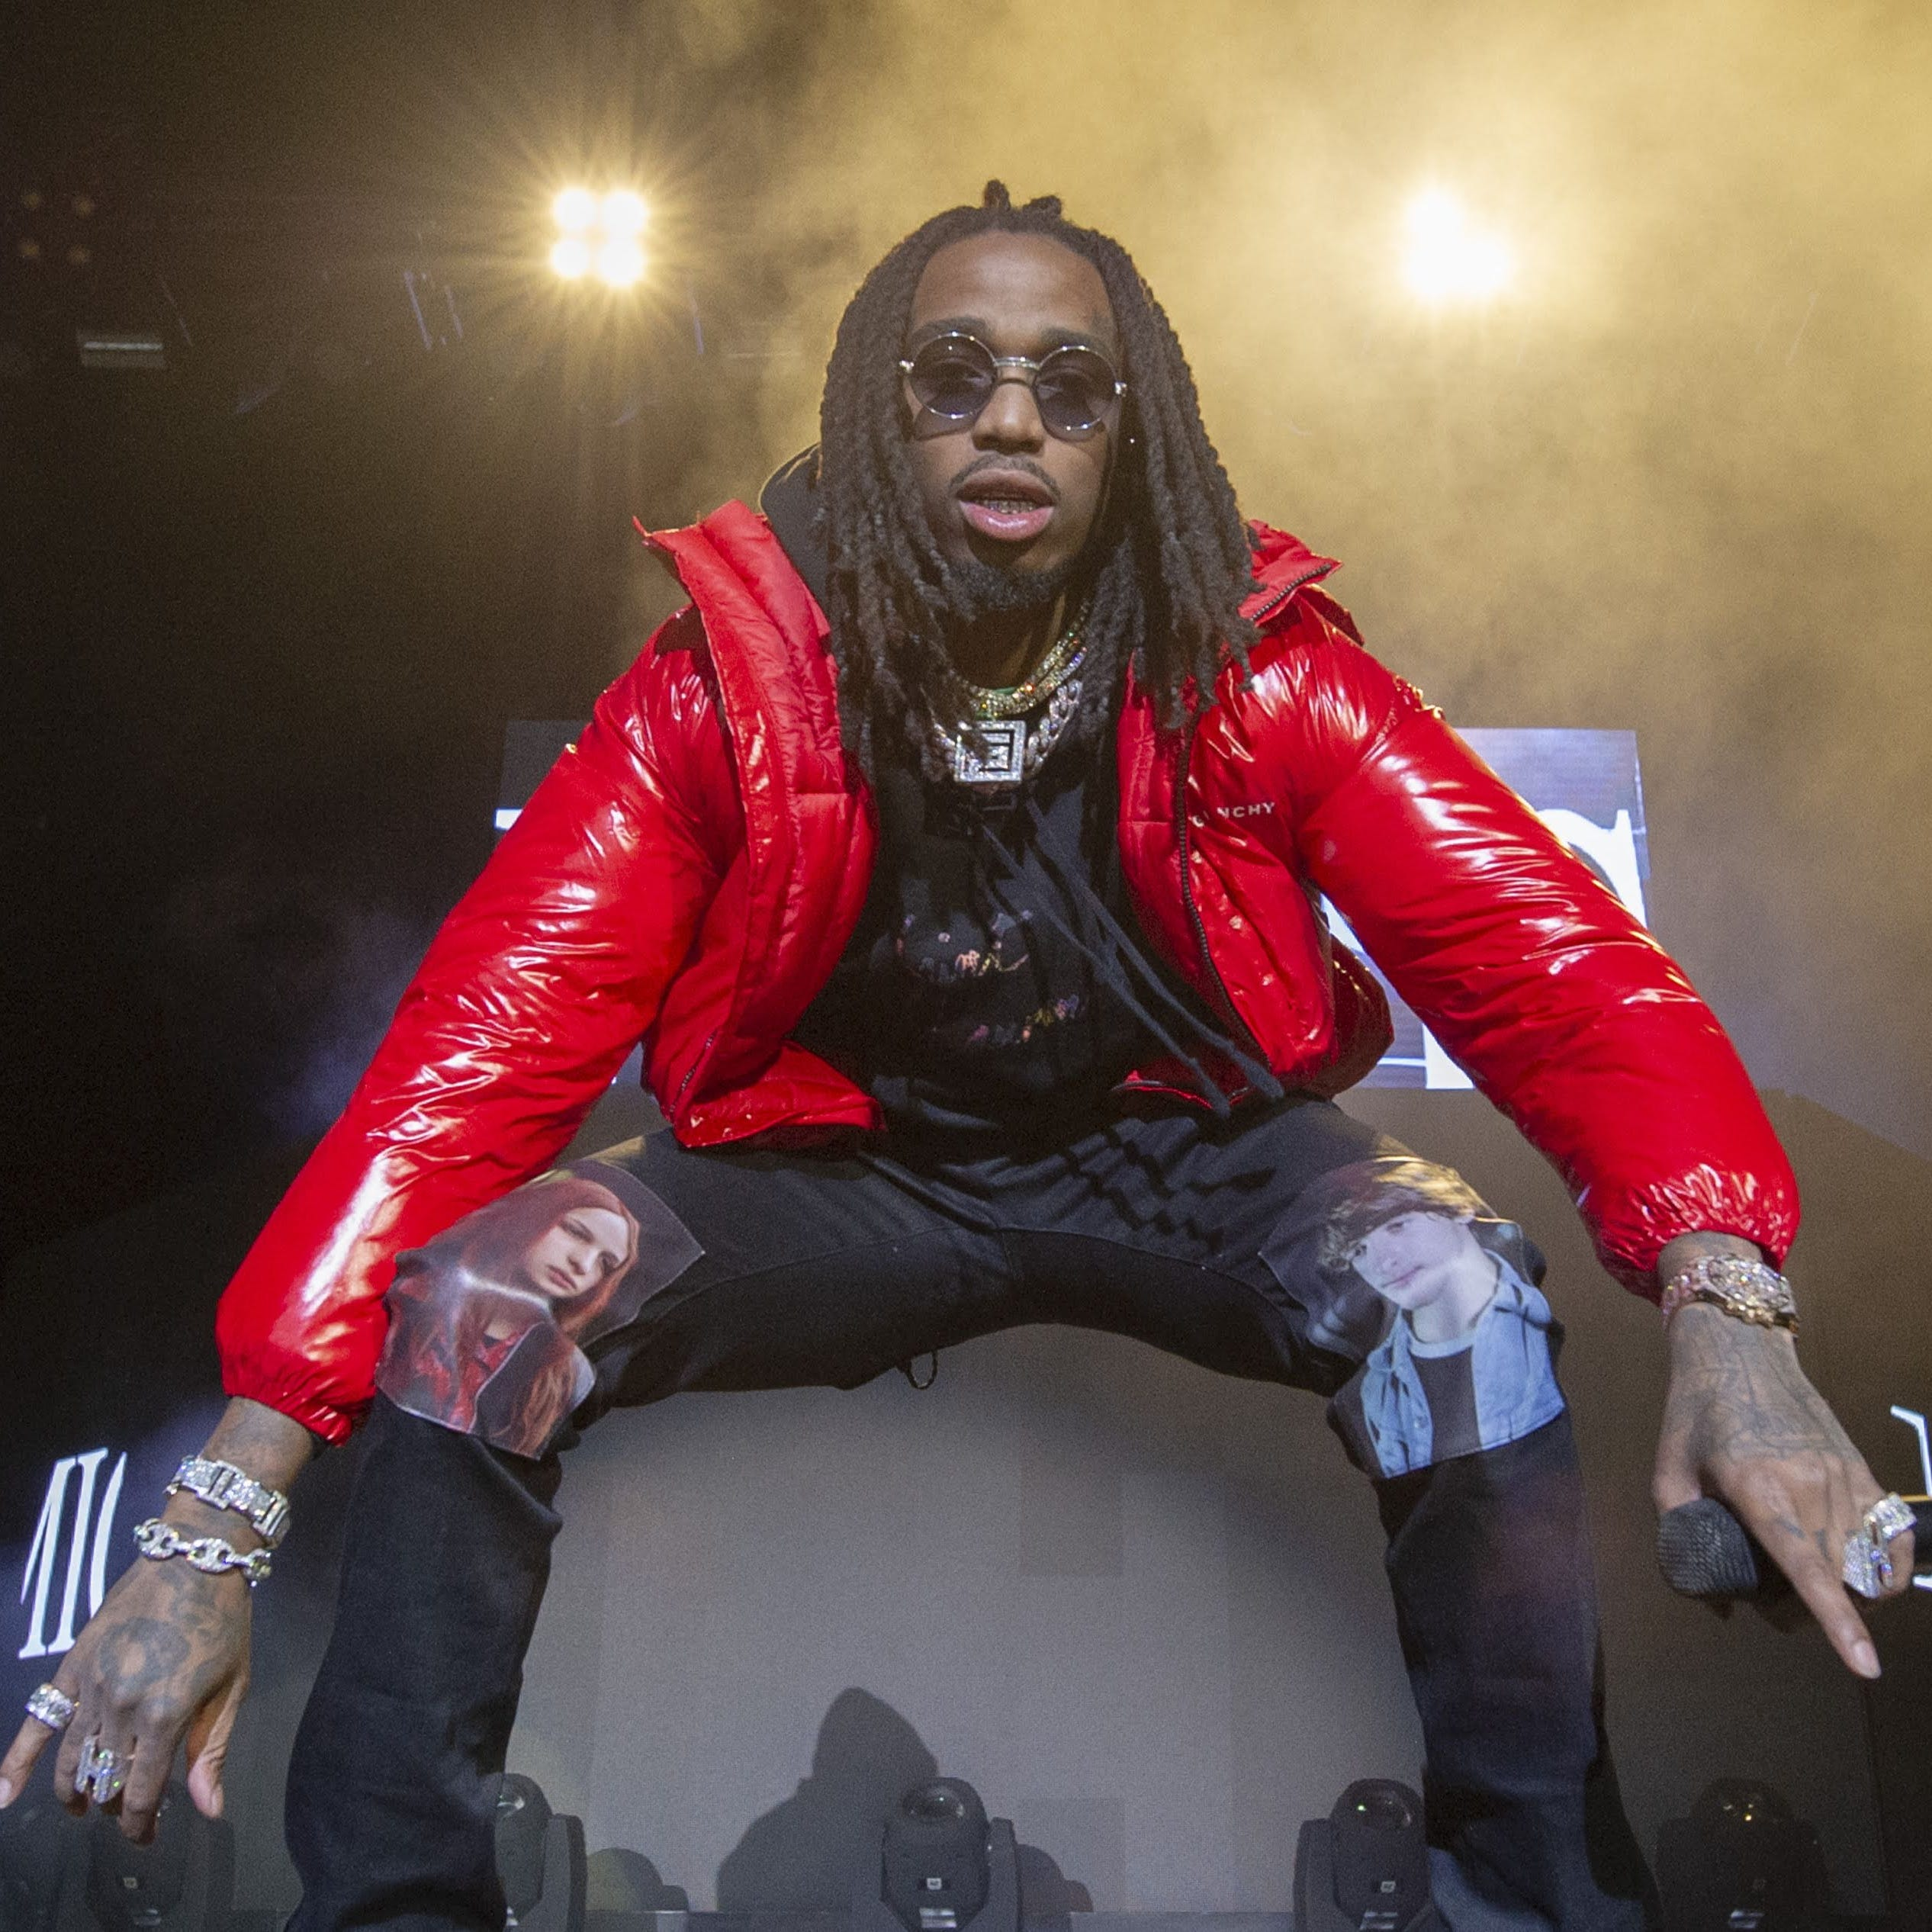 Migos bring hip-hop professionalism but not much fun to Hot 96.3 Santa Slam